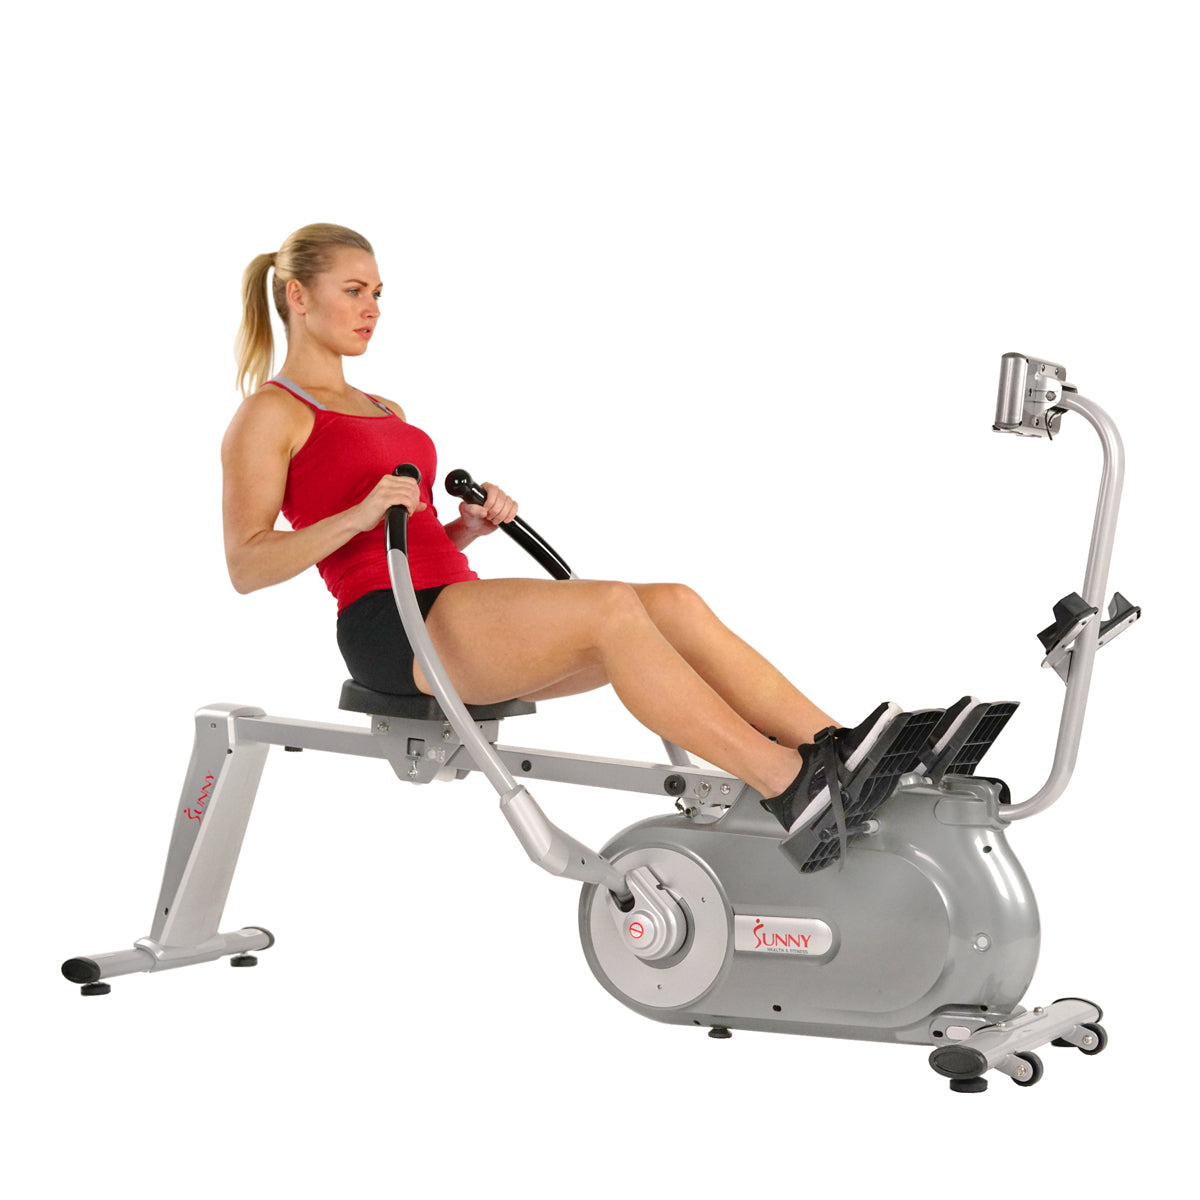 sunny-health-fitness-rowers-full-motion-magnetic-rowing-machine-rower-LCD-monitor-SF-RW5864-full-motion-arms